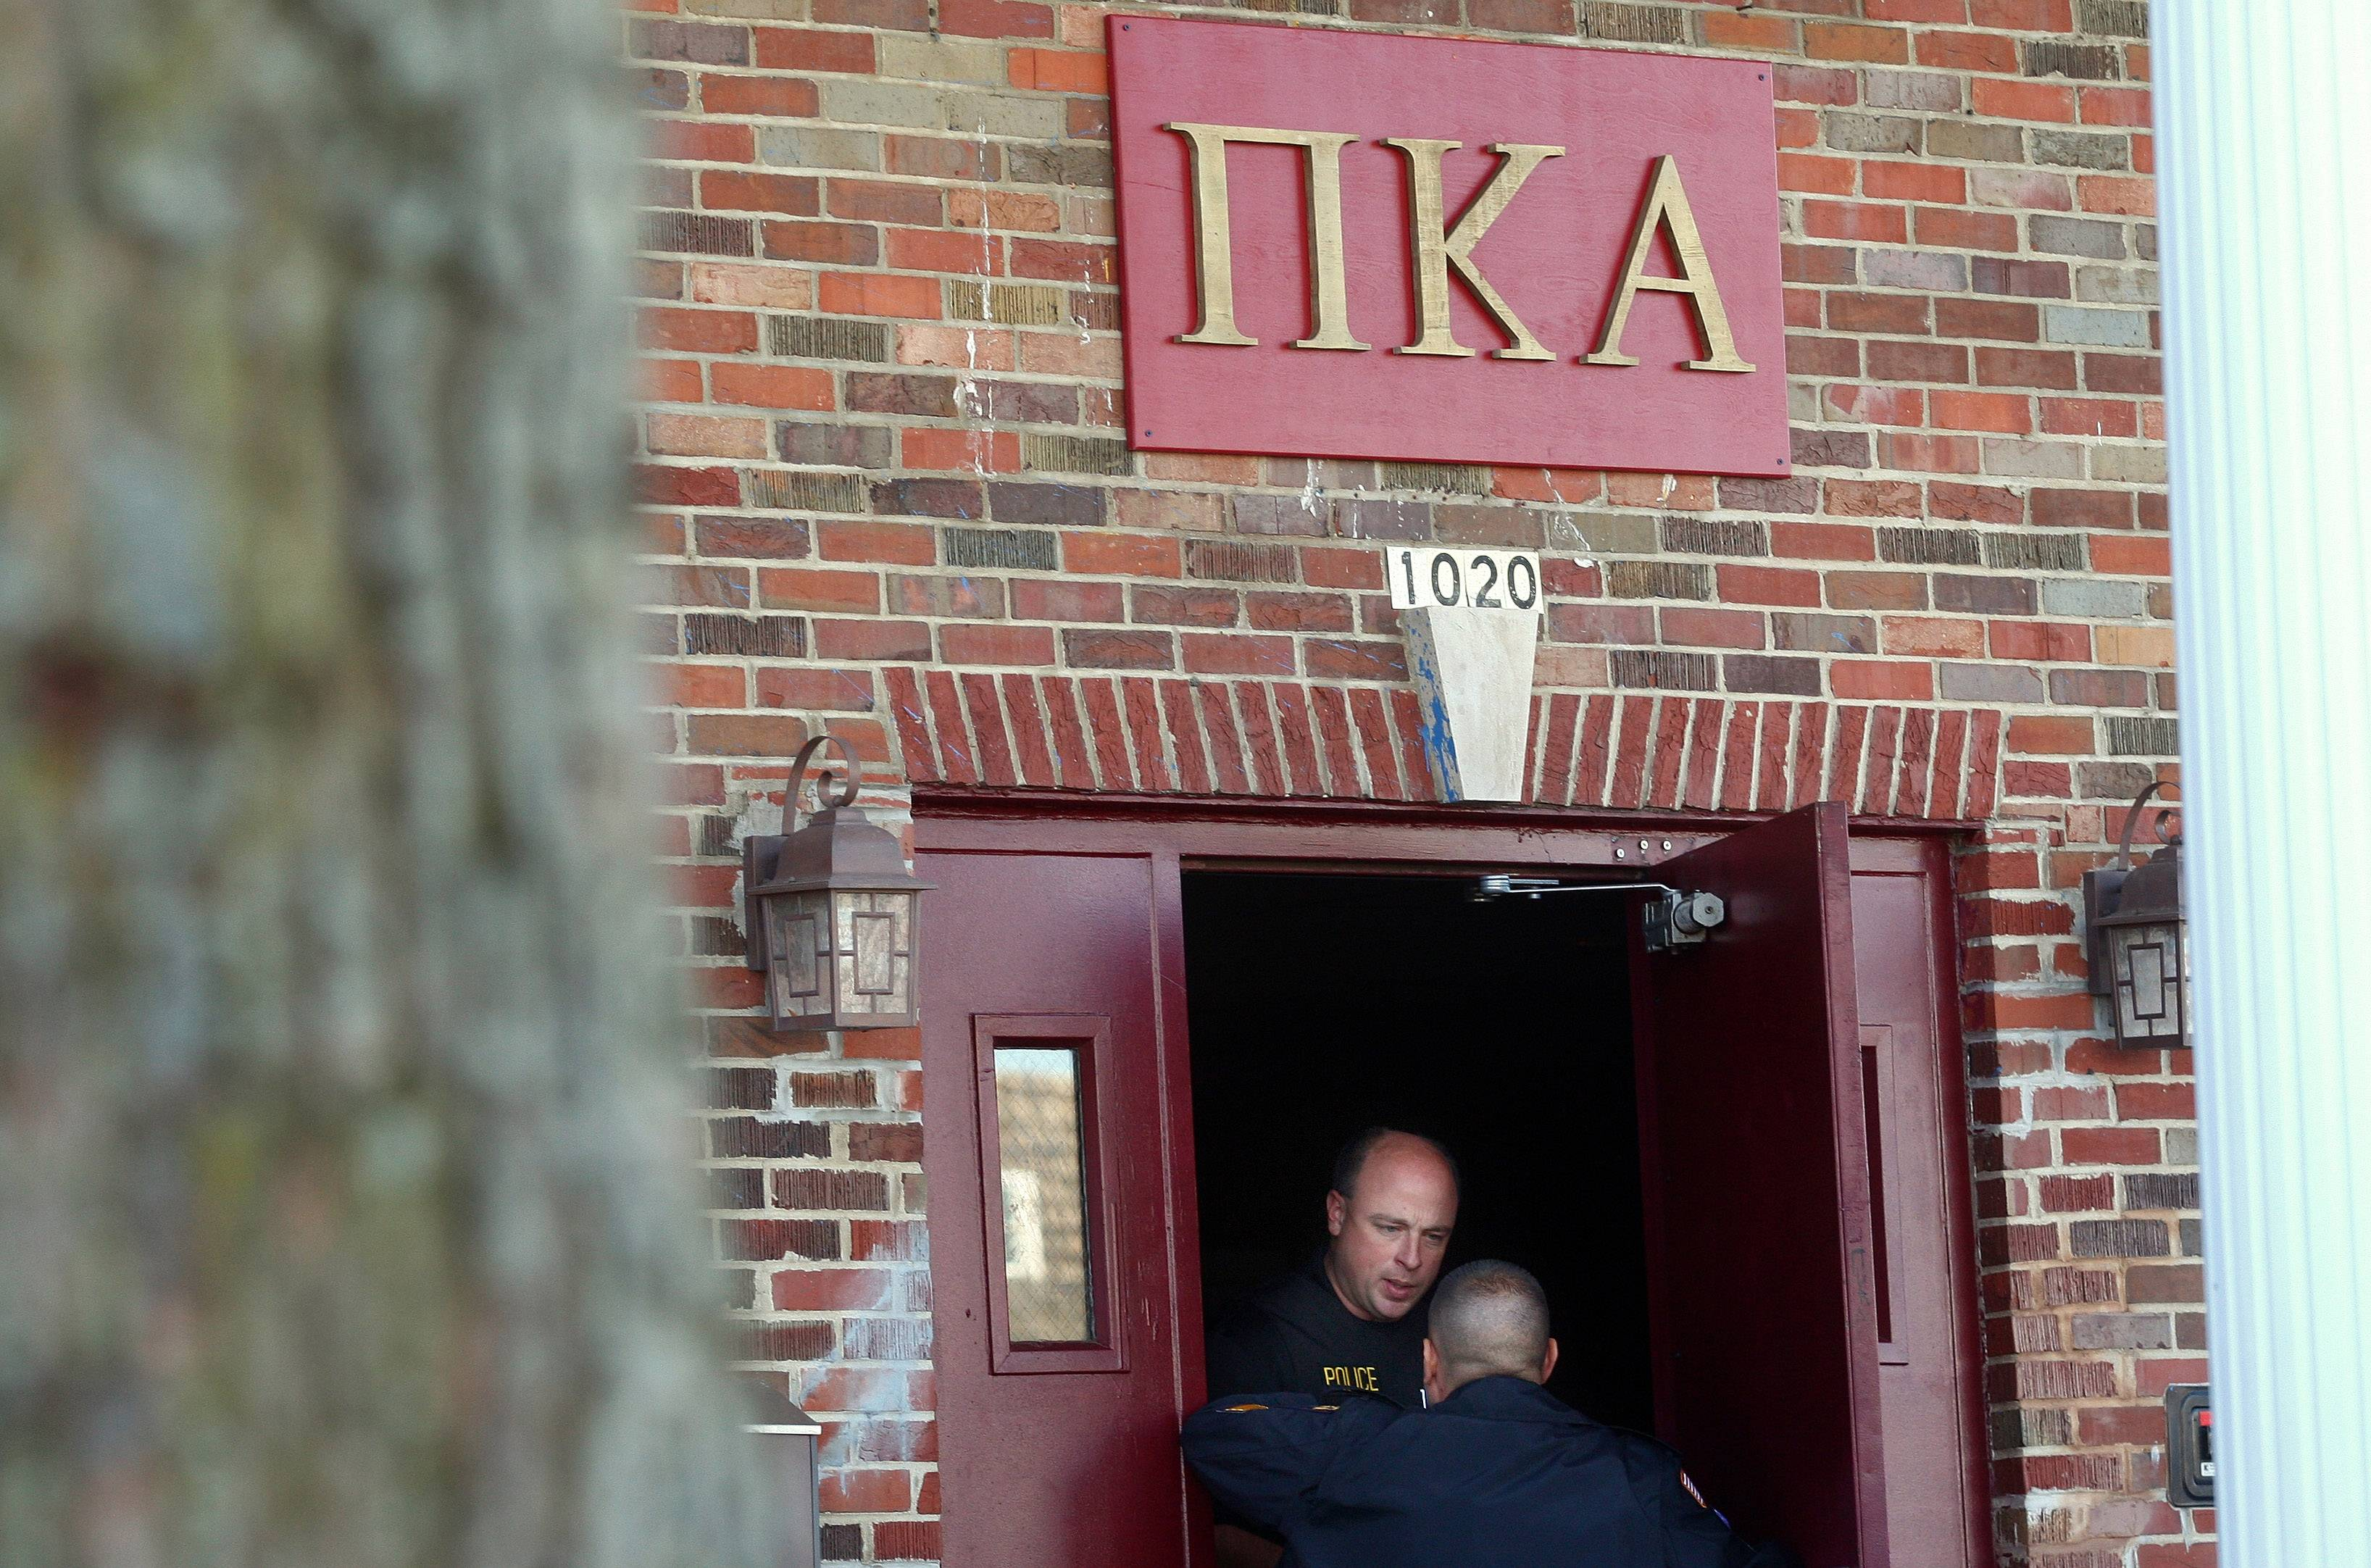 DeKalb and Northern Illinois University police investigate the death in 2012 of NIU freshman David Bogenberger at the Pi Kappa Alpha house in DeKalb.